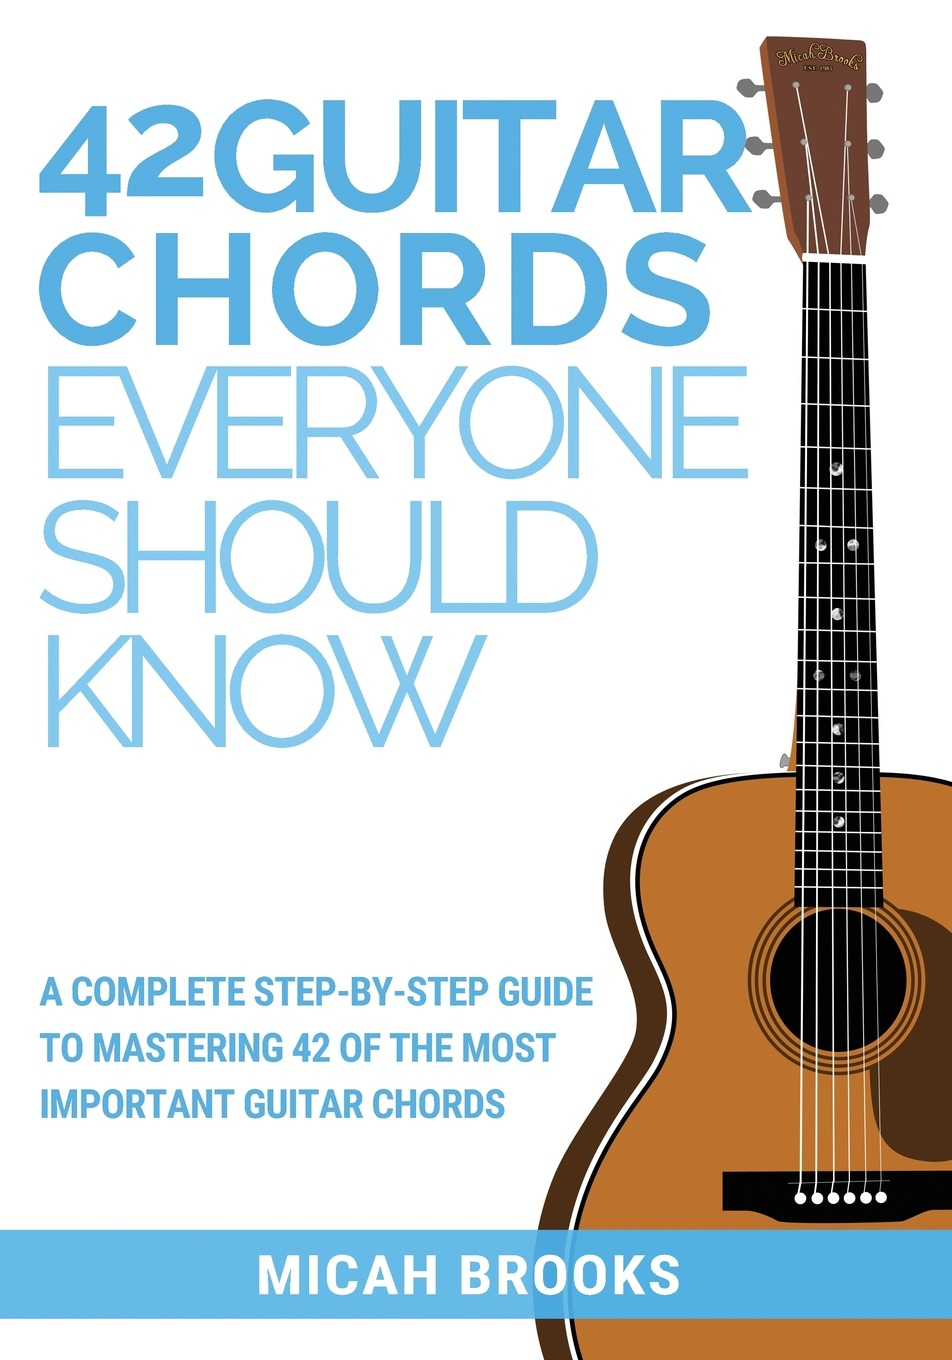 Micah Brooks 42 Guitar Chords Everyone Should Know. A Complete Step-By-Step Guide To Mastering Of The Most Important